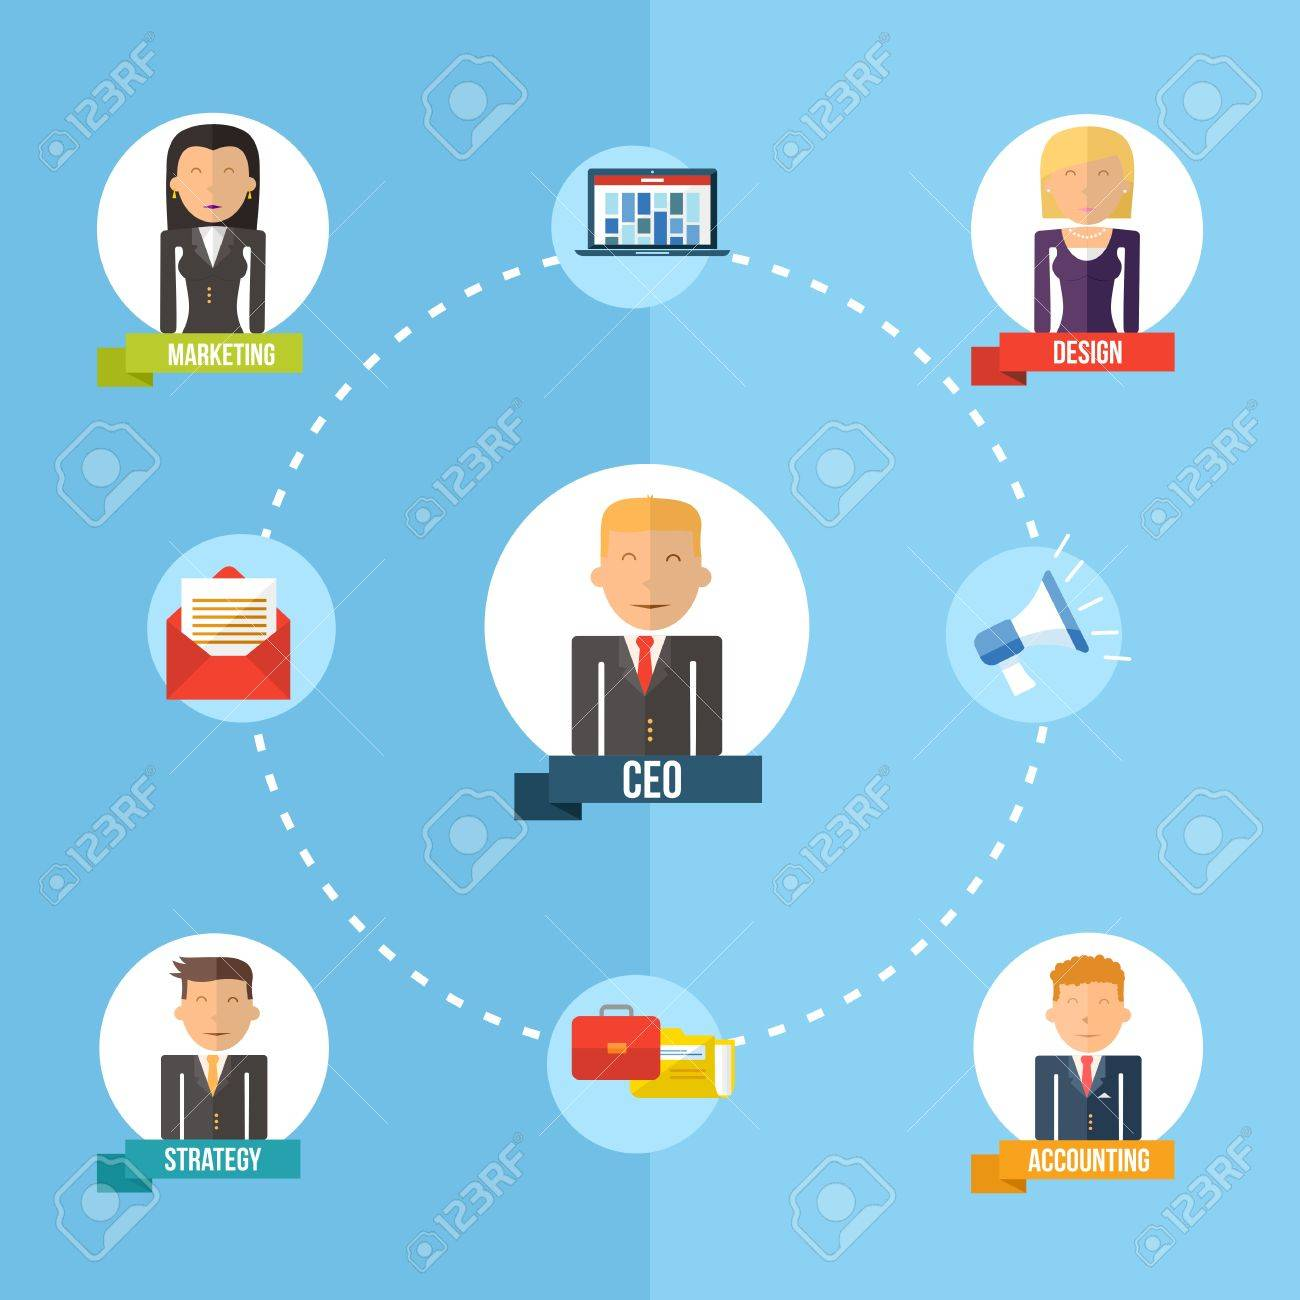 Digital Business era management chart concept in flat icons design style  Marketing web, network and CEO elements  EPS10 vector file organized in layers for easy editing Stock Vector - 30176783